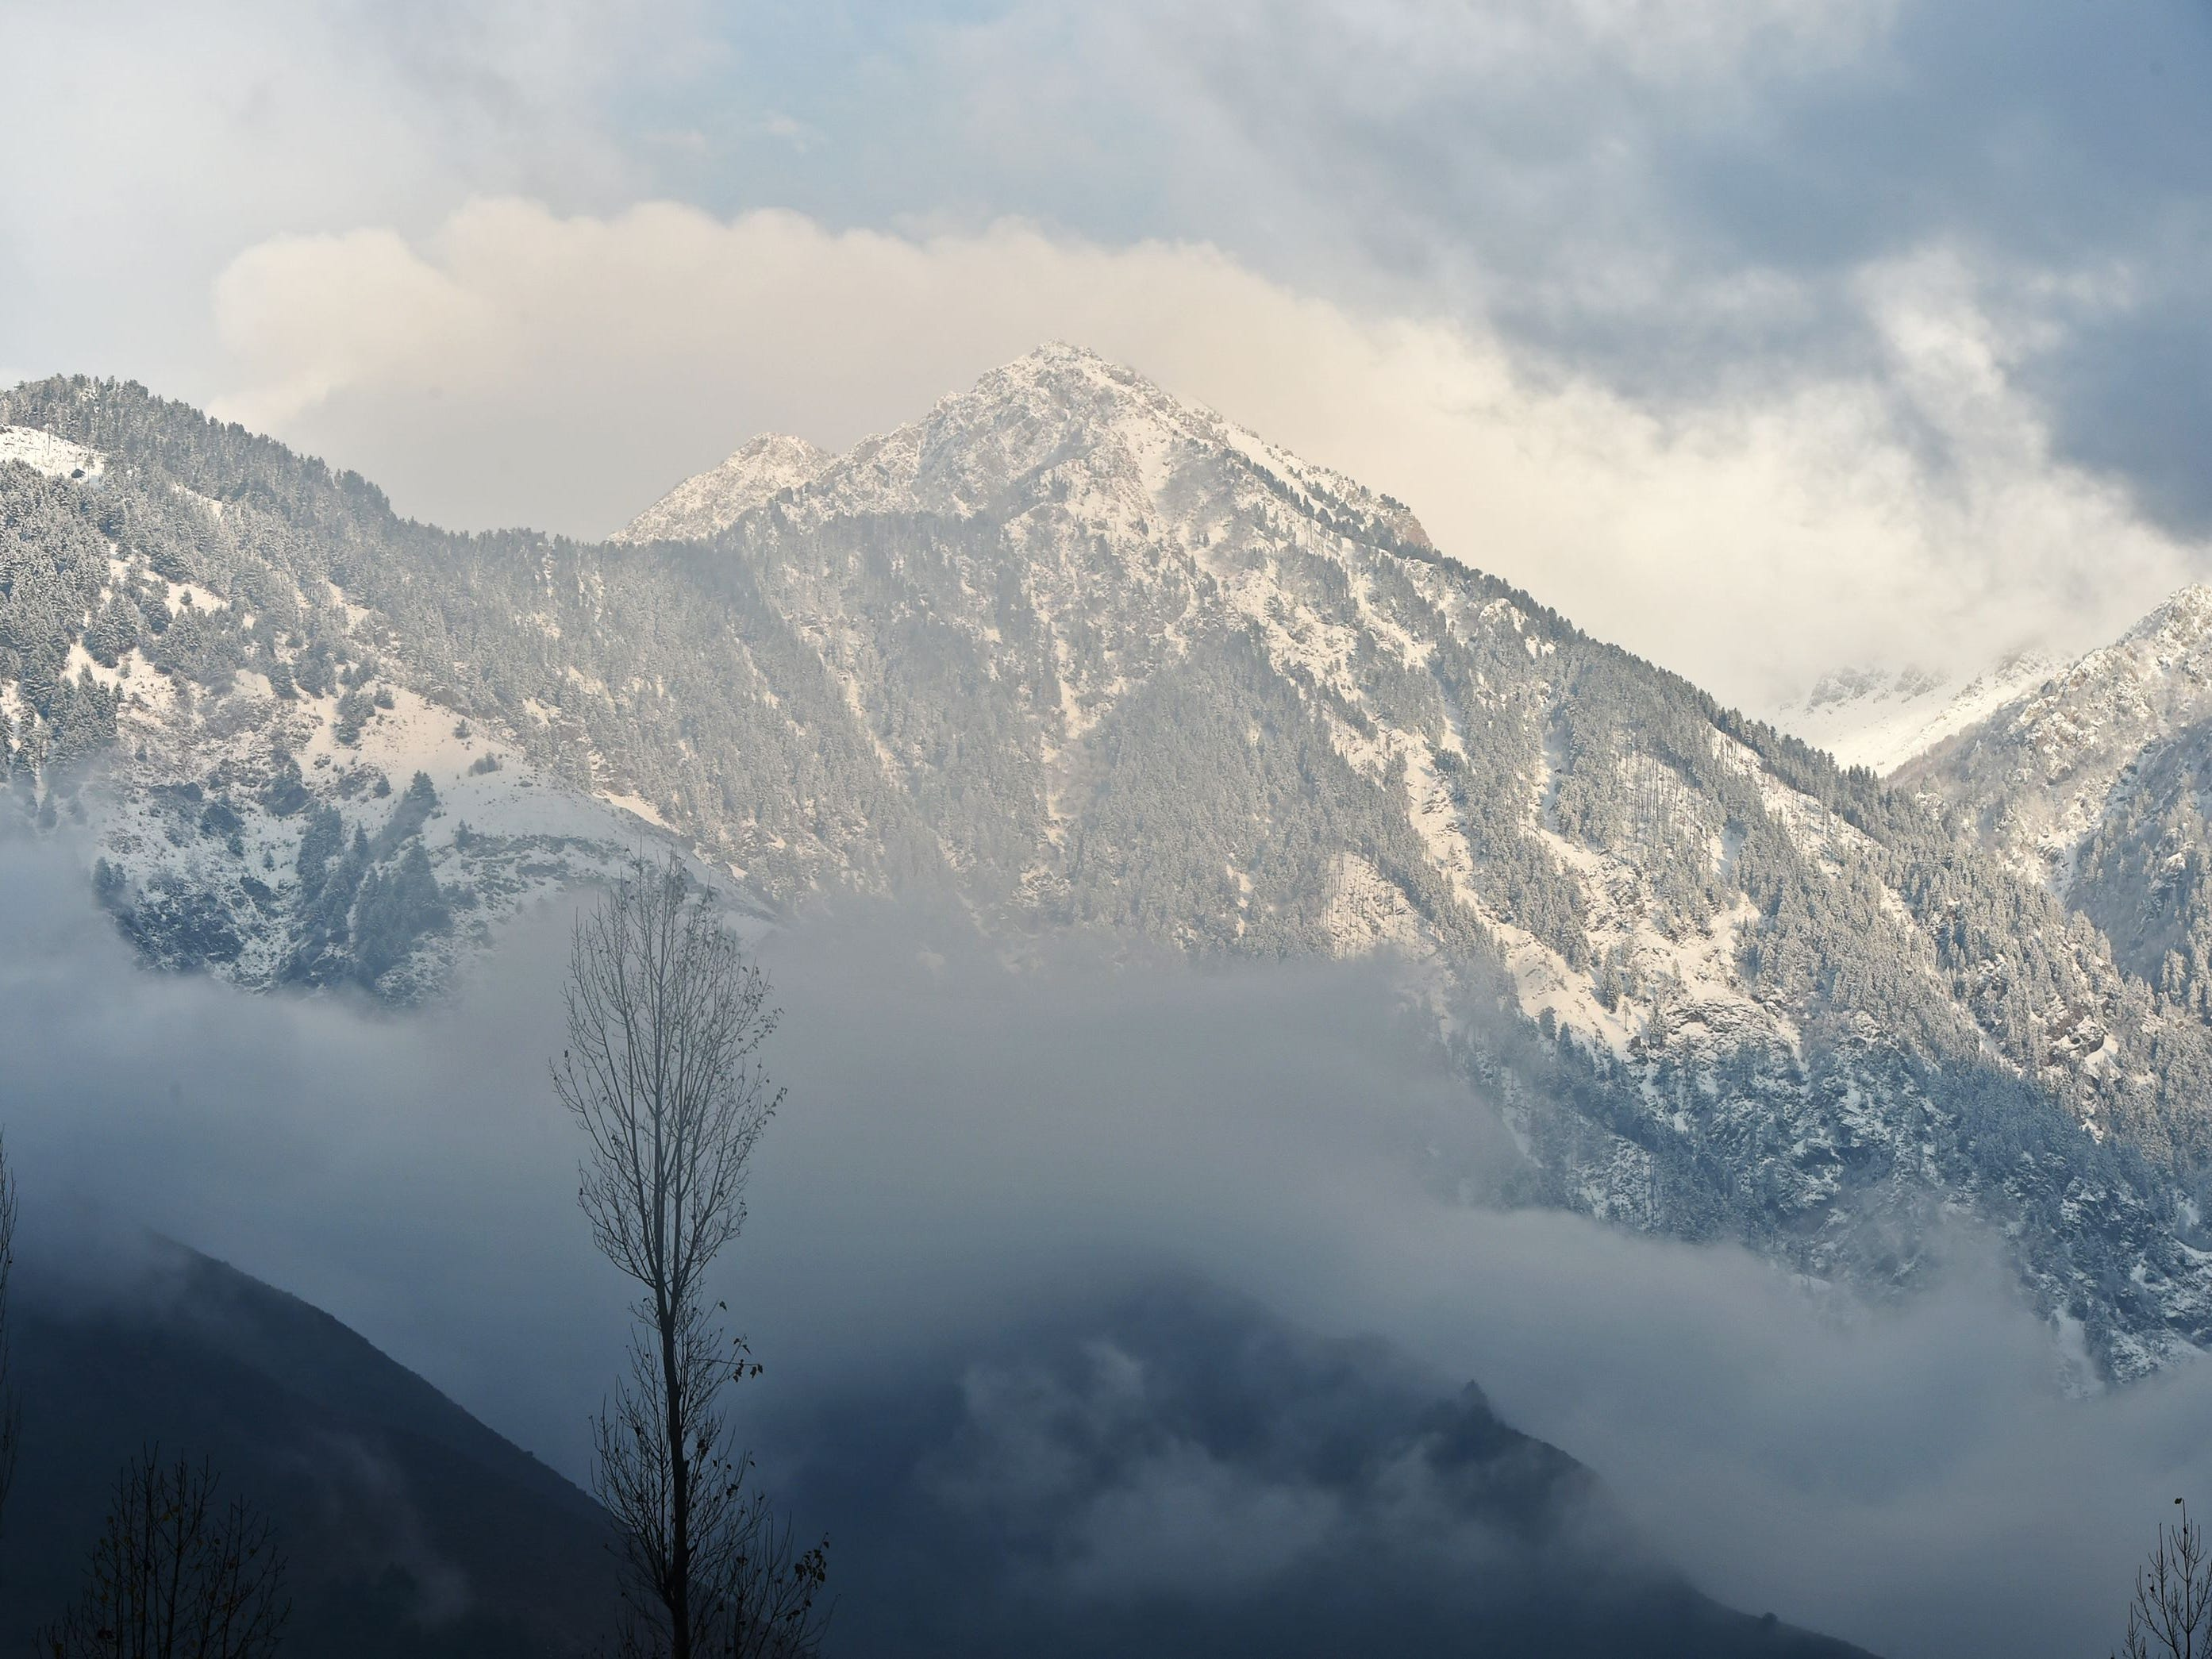 Snow covered mountains are seen during a cold and rainy day on the outskirts of Srinagar, India on Nov. 14, 2018.